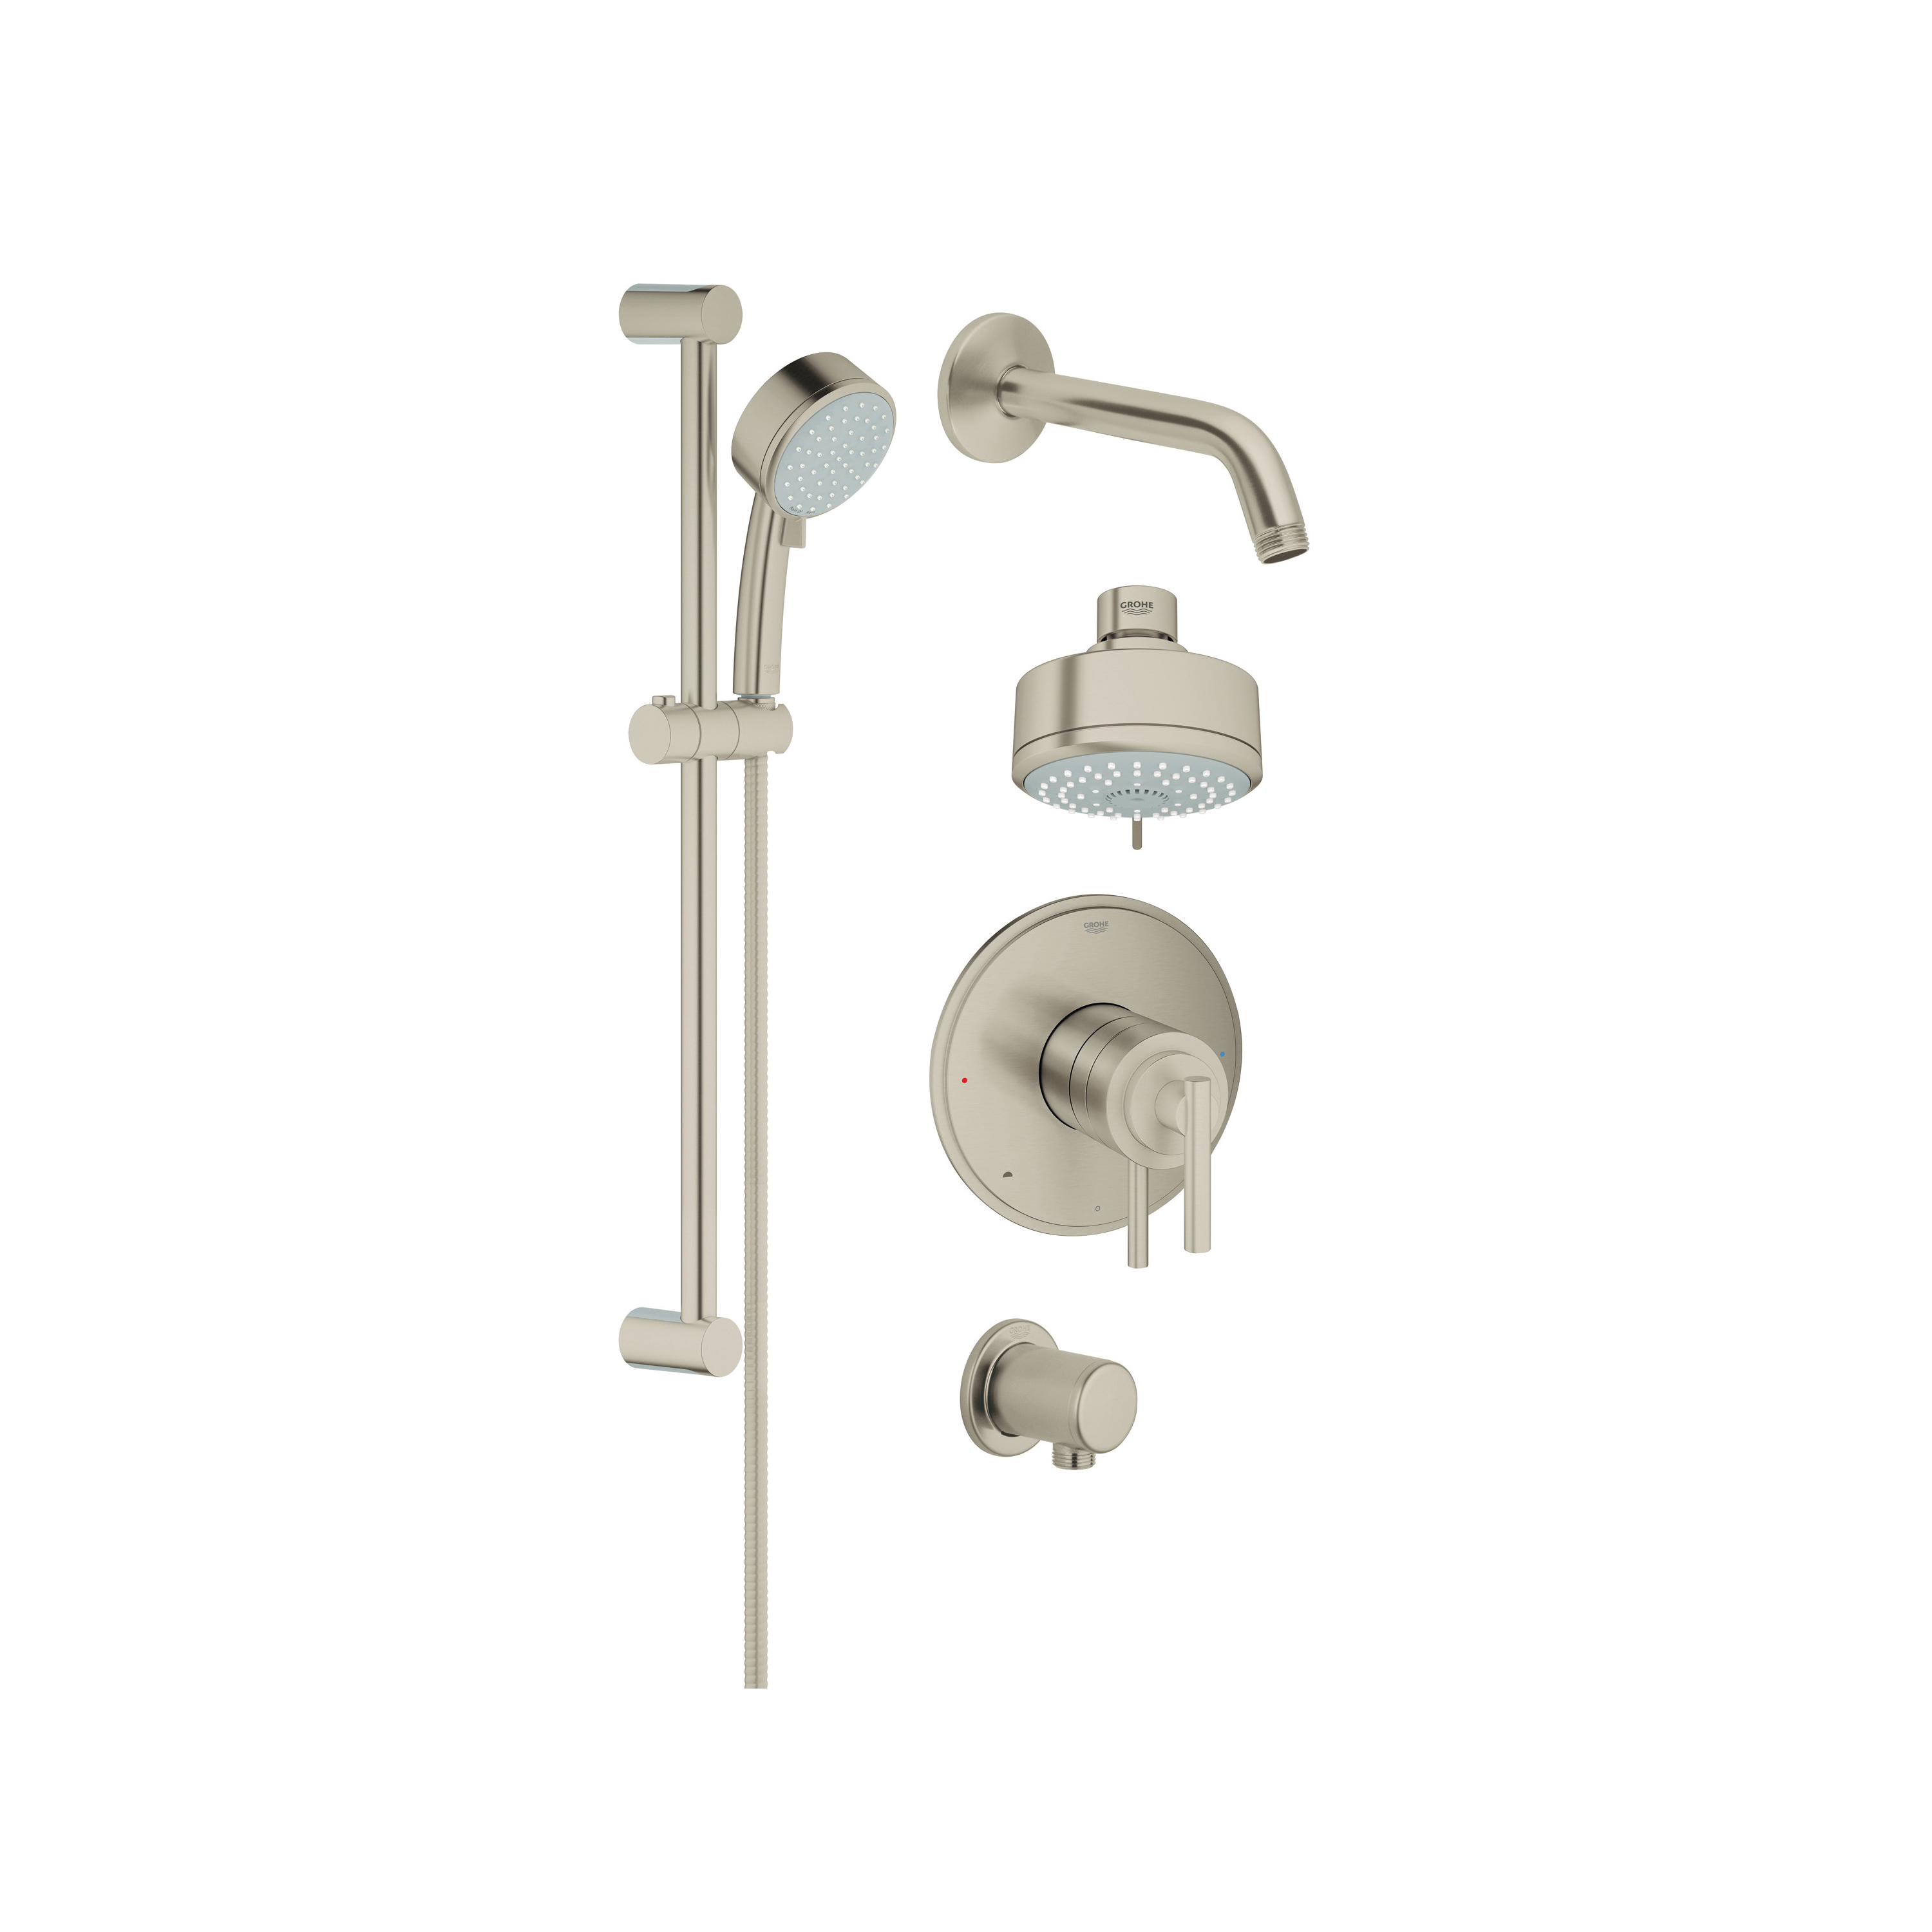 Consolidated Supply Co Grohe 35055en0 Grohflex Pressure Balance